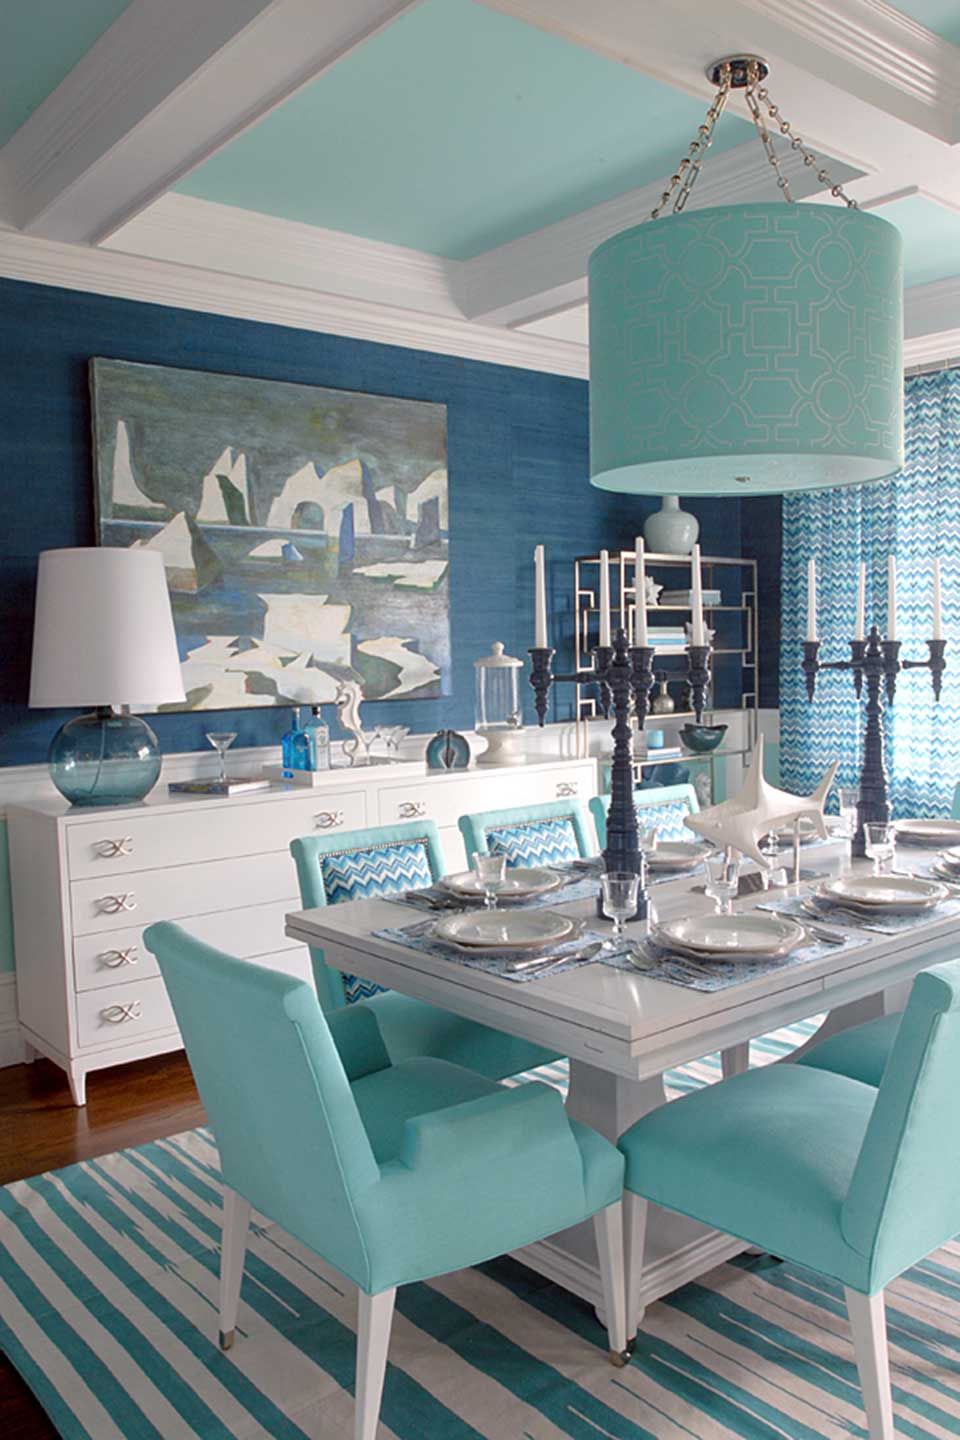 The Dunes & Duchess 4 arm candelabra in a room designed by Mabley Handler